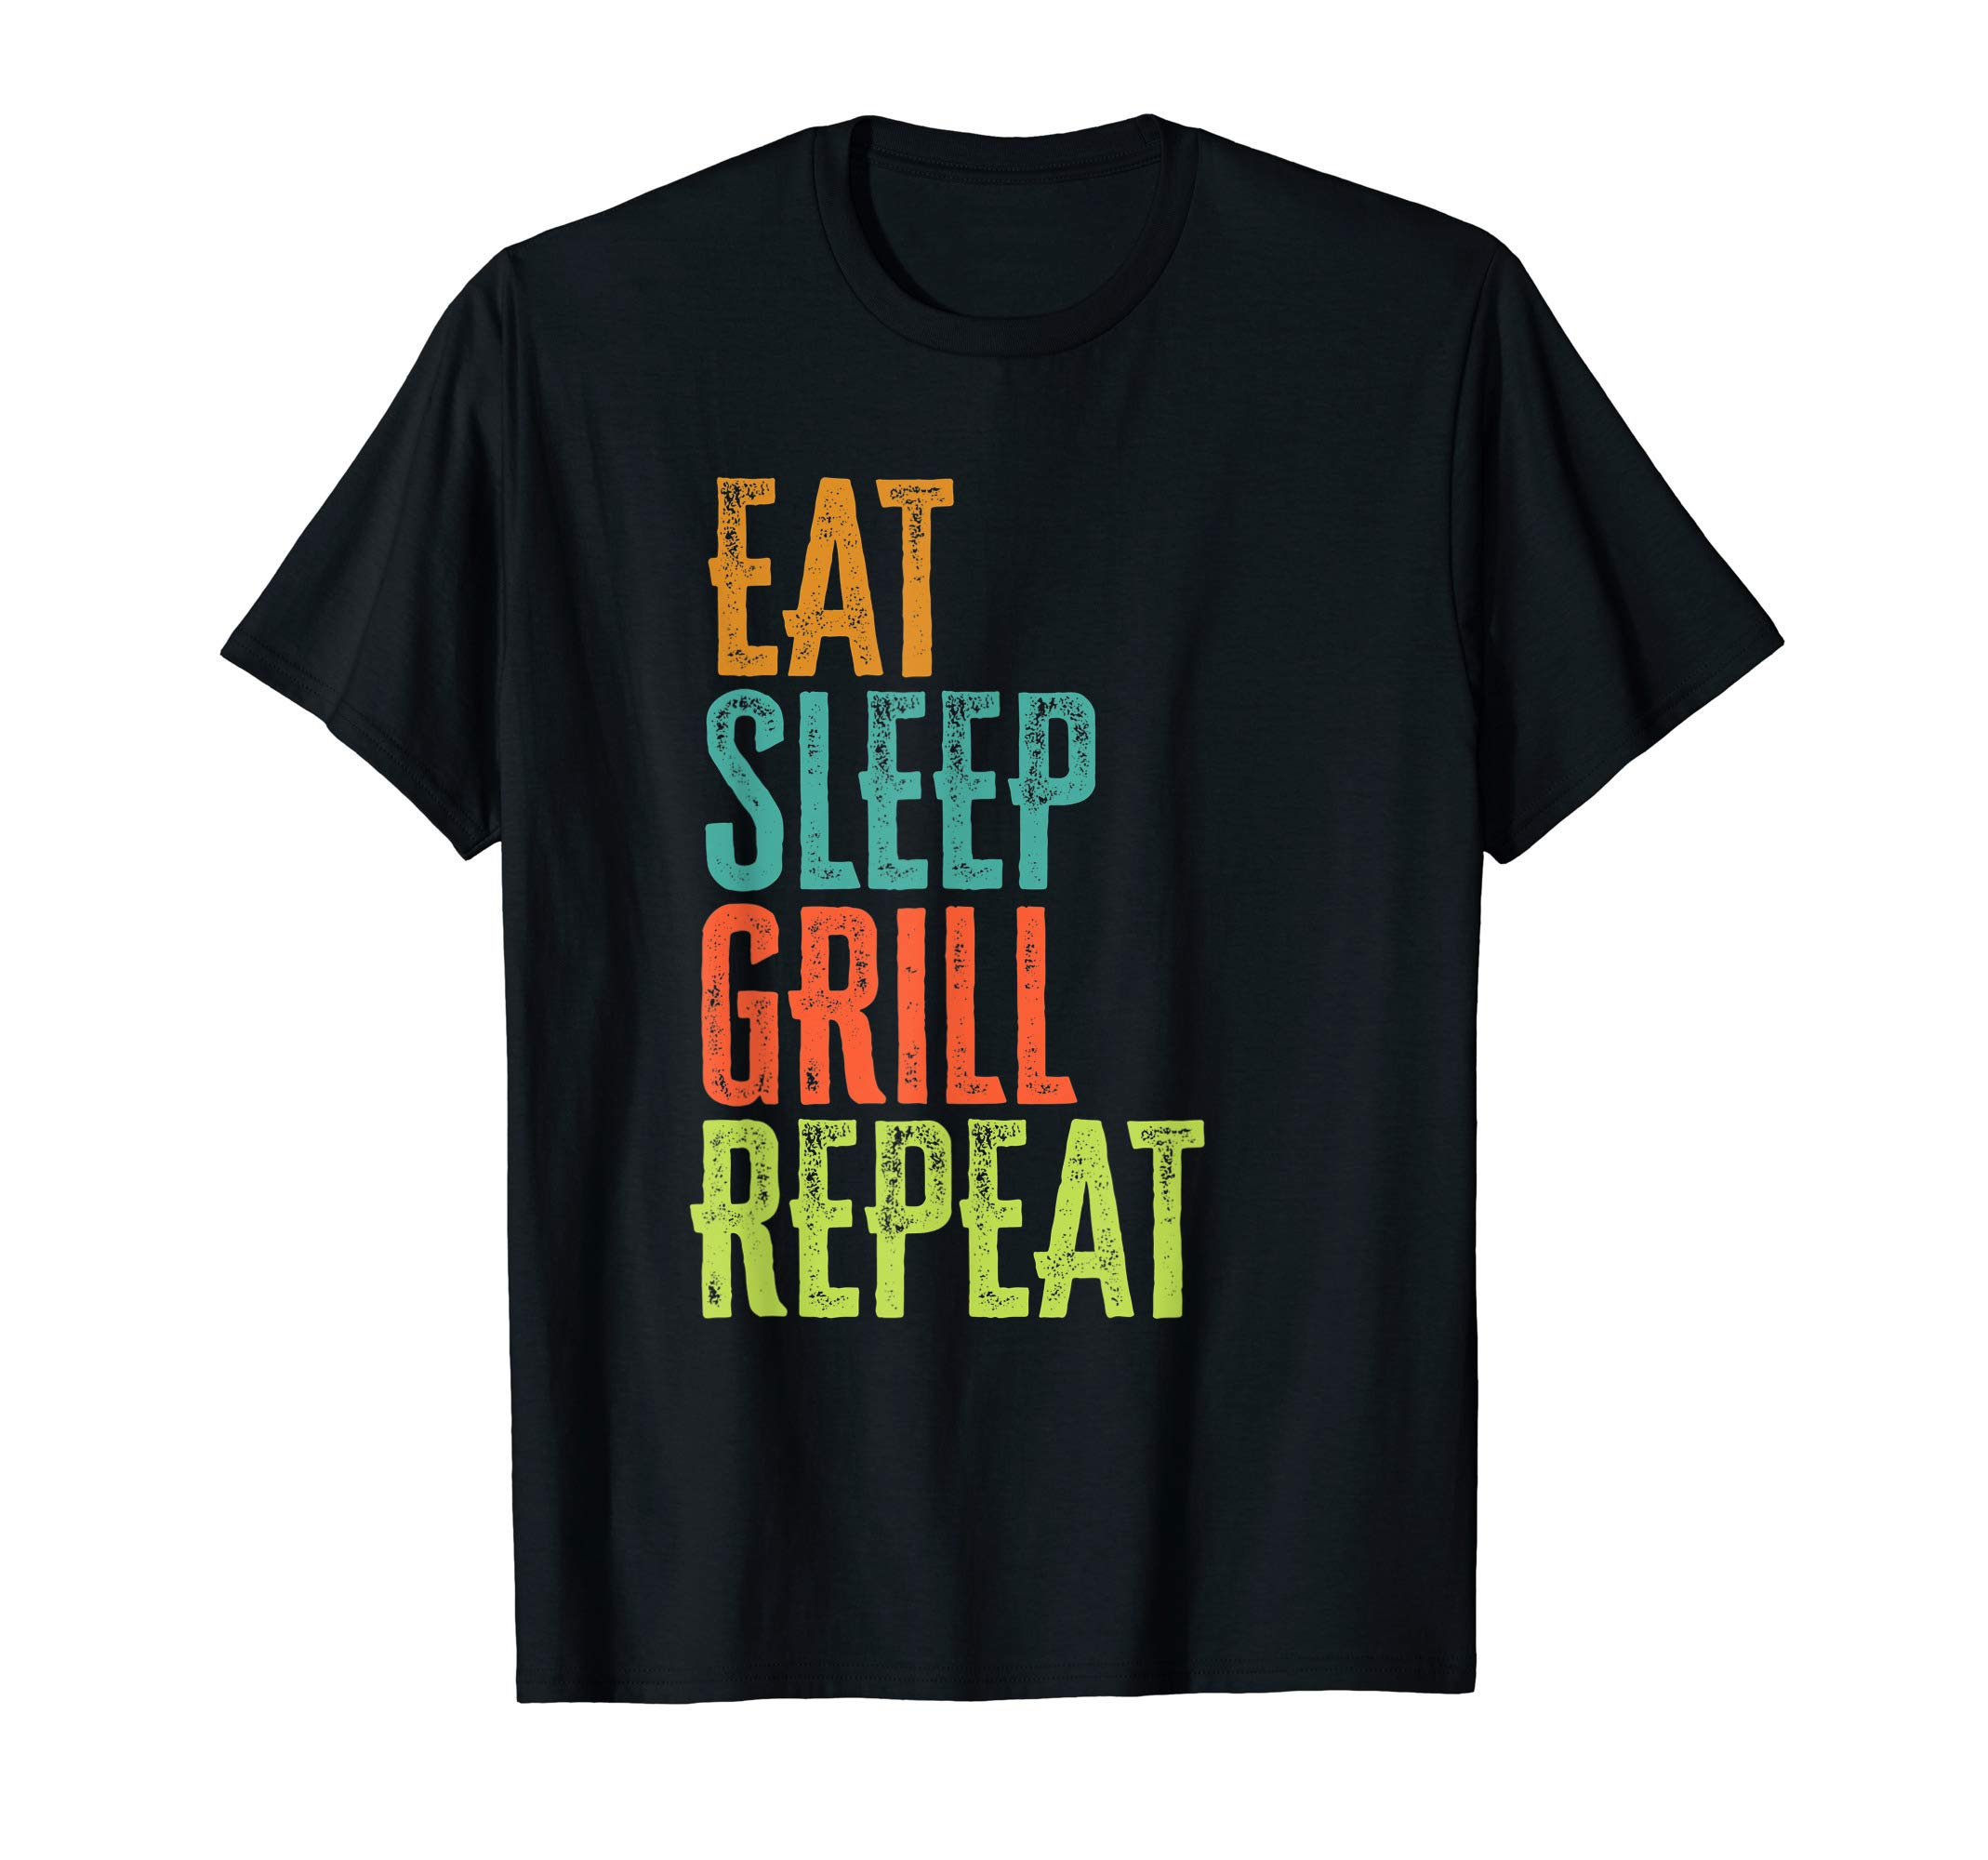 Eat Sleep Grill Repeat Culinary Chef Cook Meat Beef Veggie T-Shirt by Vintage Cooking Party Classic Epic Novelty Gifts